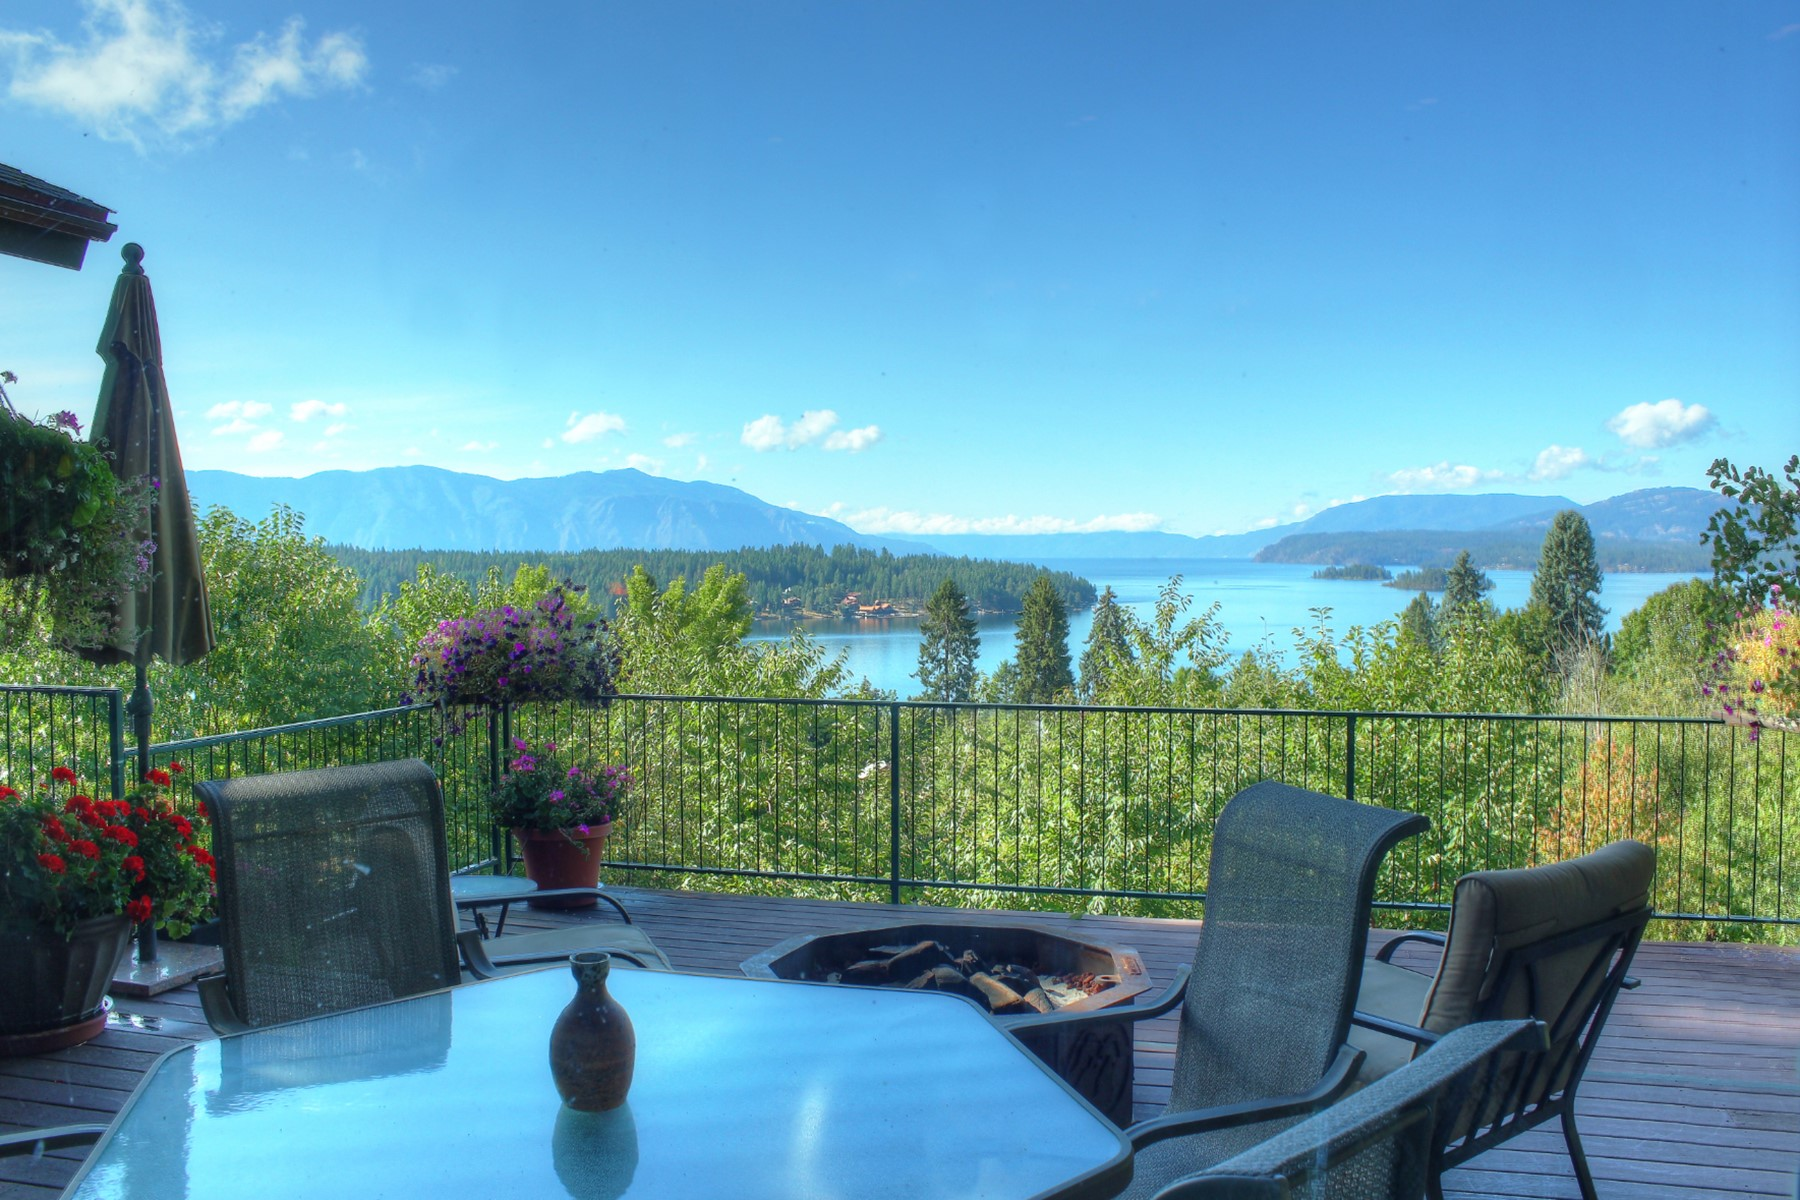 Single Family Homes for Sale at Simply Stunning Lake and Mountain Views. 310 Cedar St Hope, Idaho 83836 United States